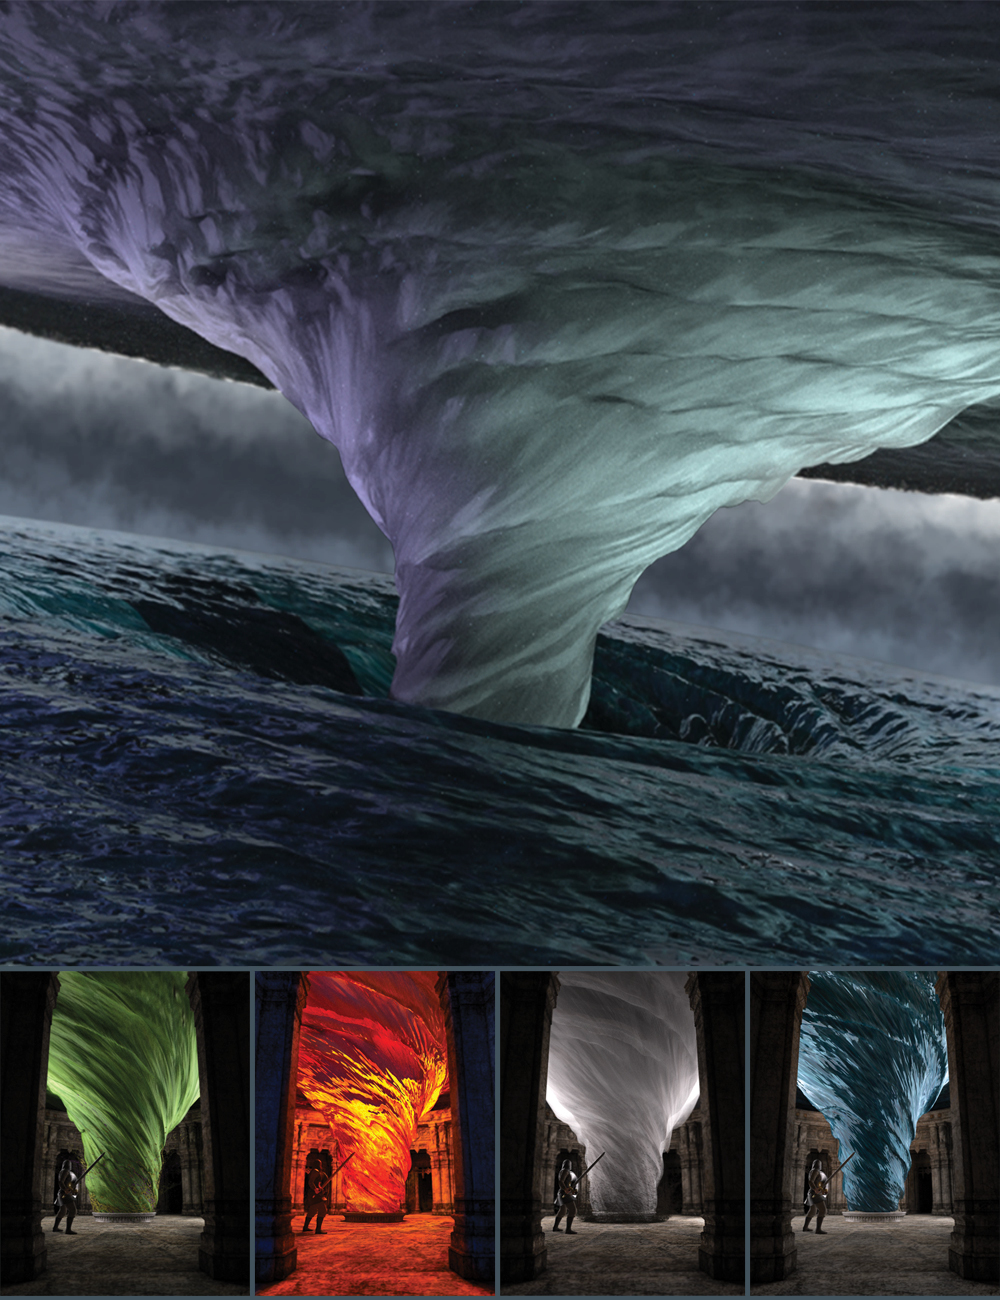 Tornado of the Four Elements by: Marshian, 3D Models by Daz 3D